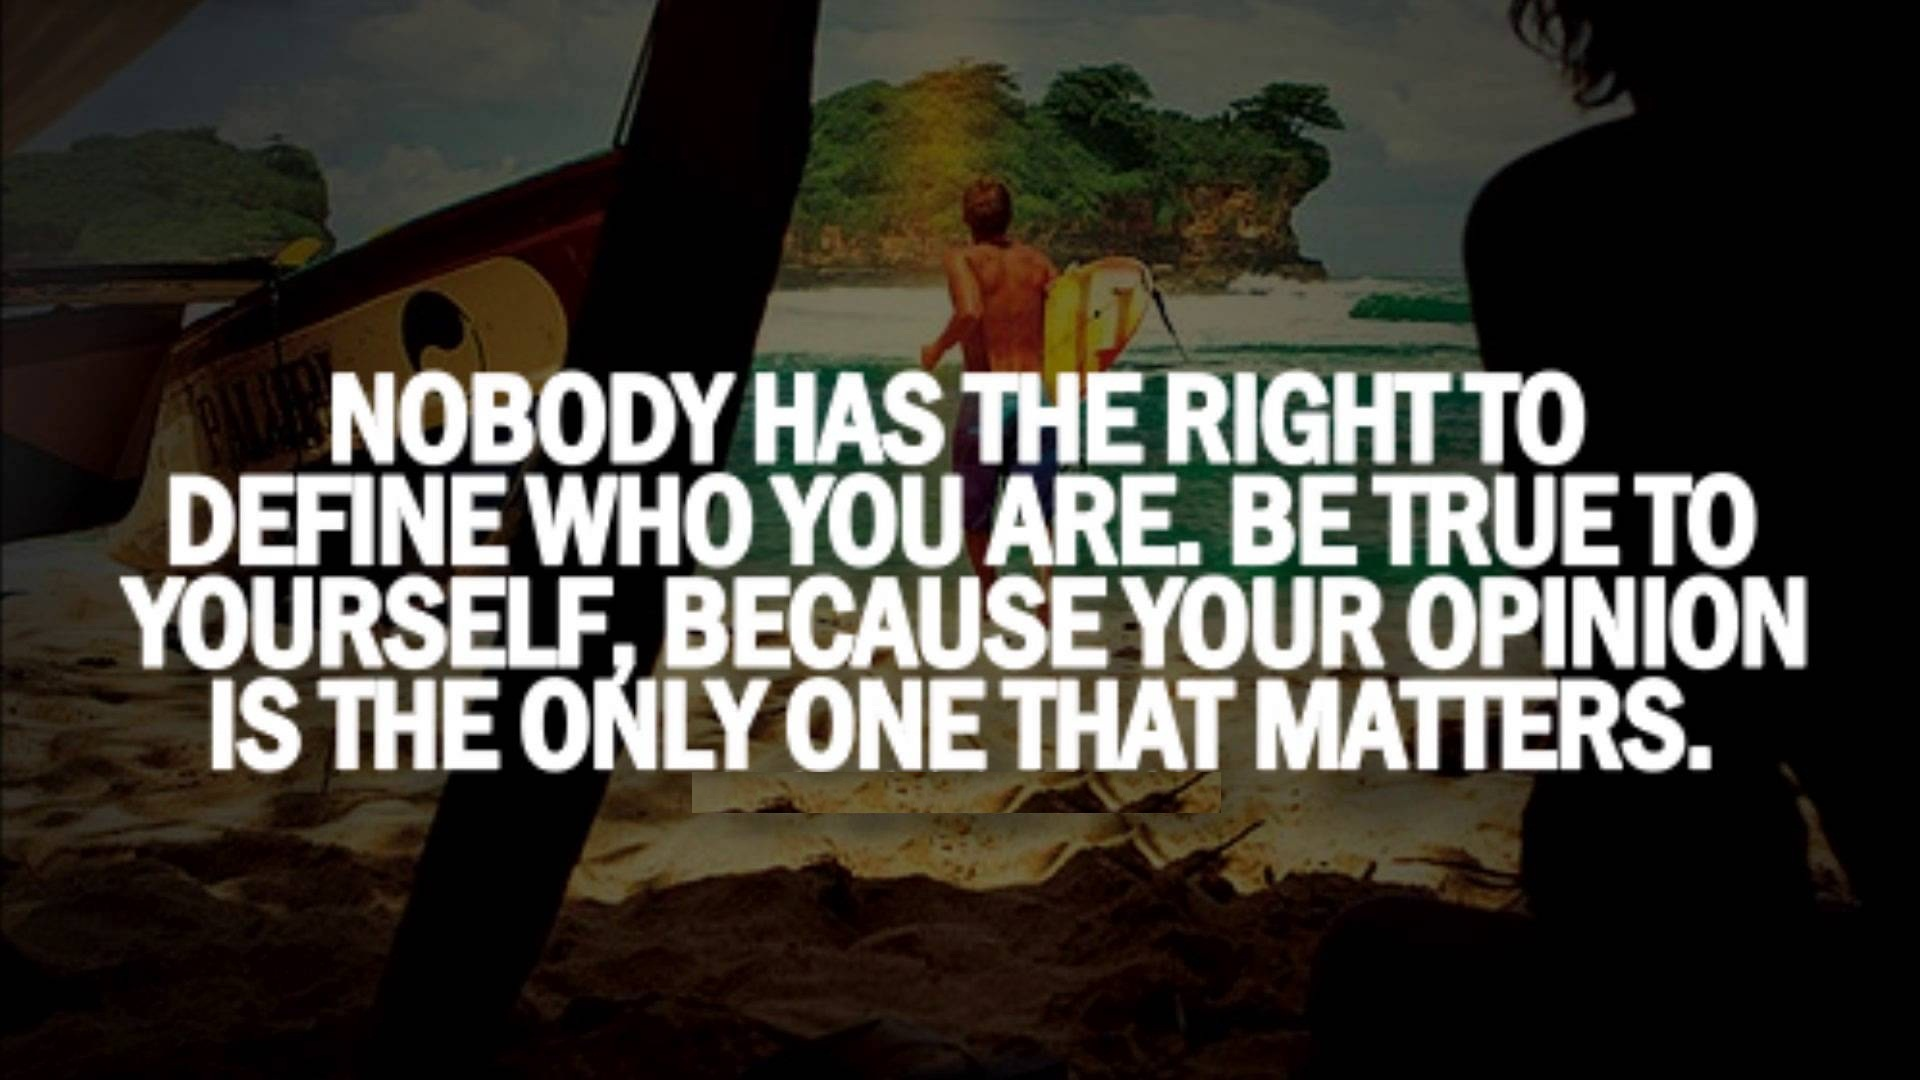 Nobody has the right to define who you are. be true to yourself, because your opinion is the only one that matters.